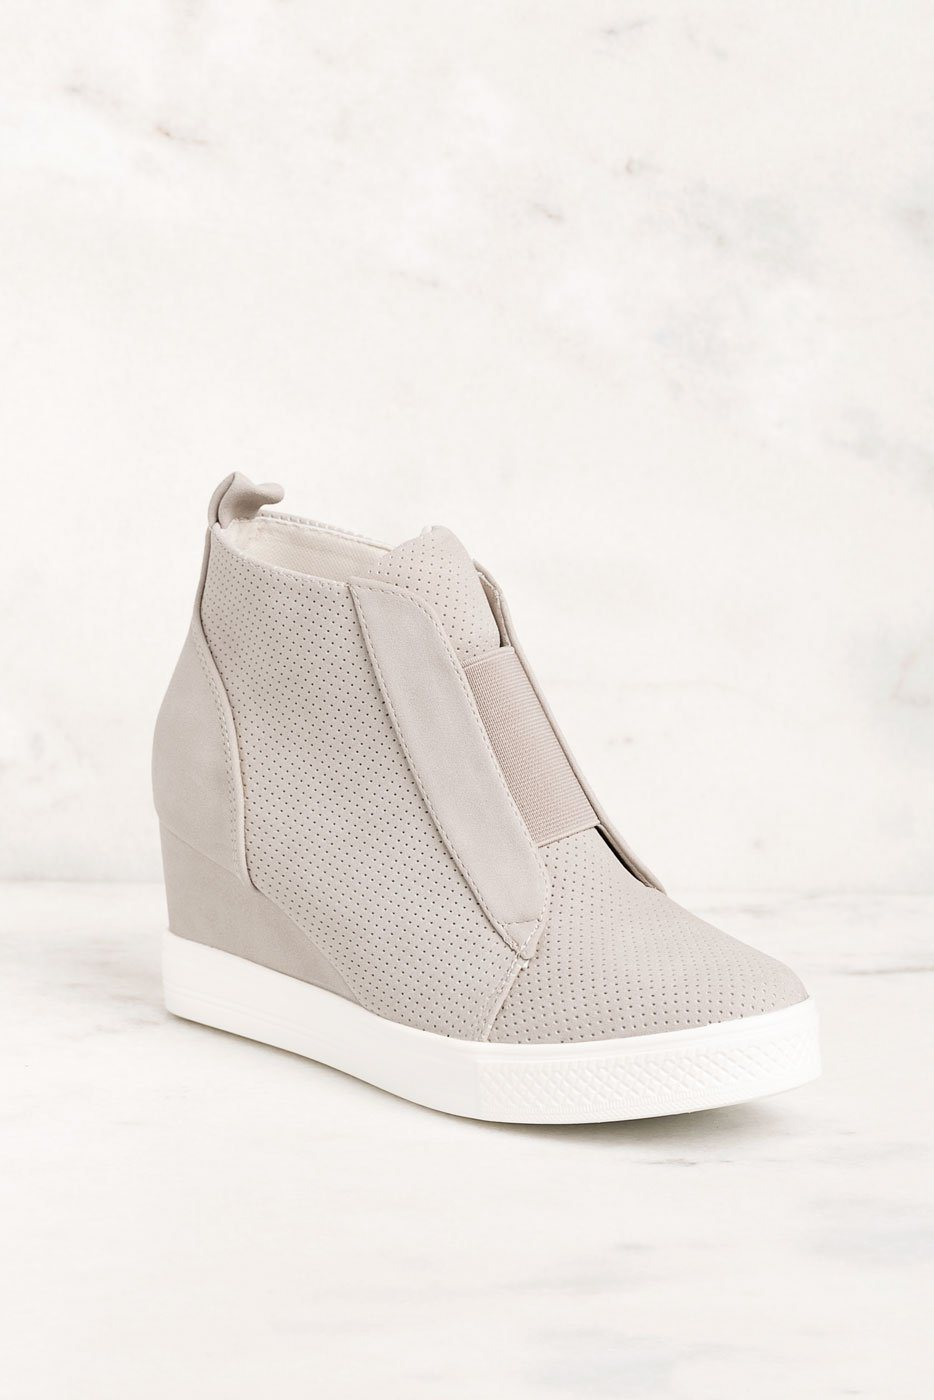 7495d0ed01 All Day Grey Slip On Wedge Sneaker | Ccocci